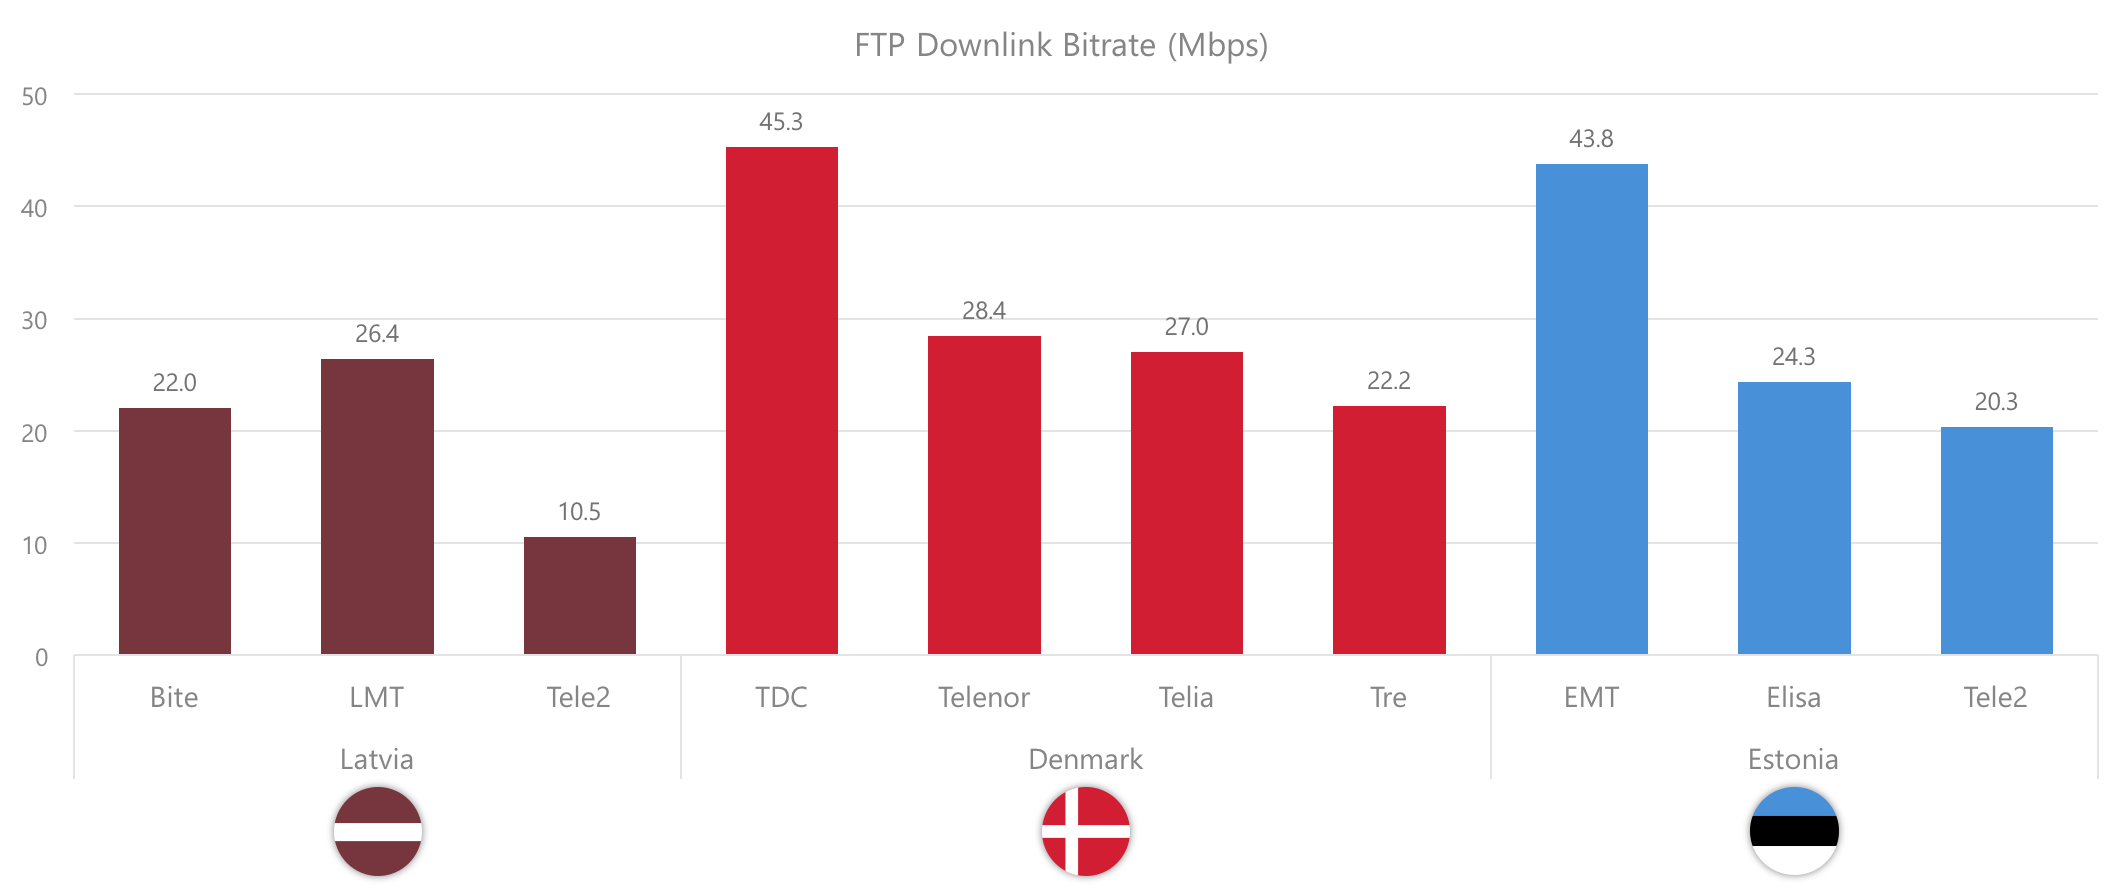 FTP downlink bitrate